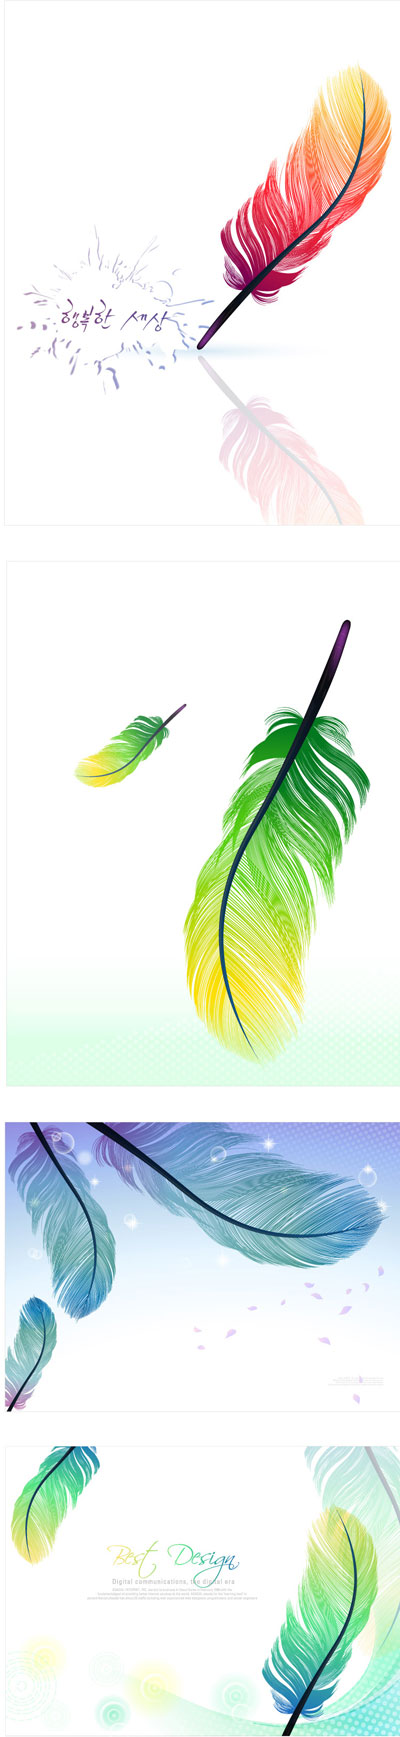 Feather color backgrounds vector set